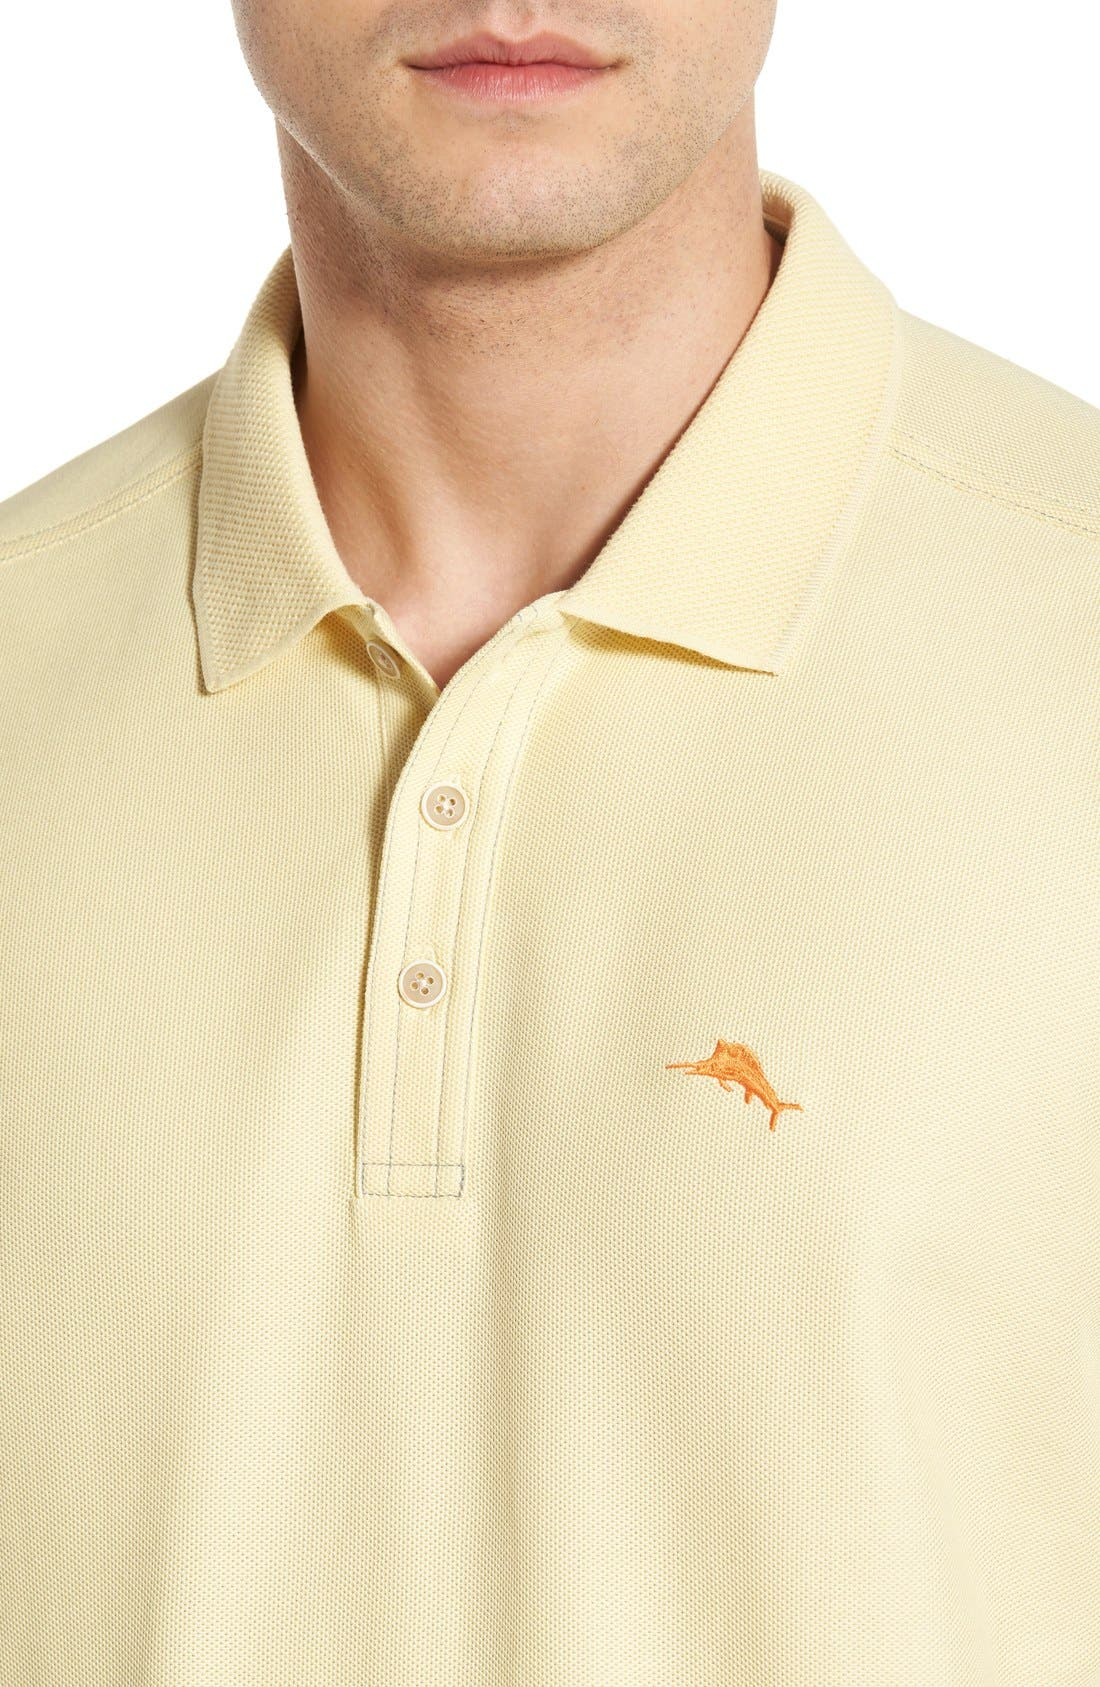 'The Emfielder' Original Fit Piqué Polo,                             Alternate thumbnail 287, color,